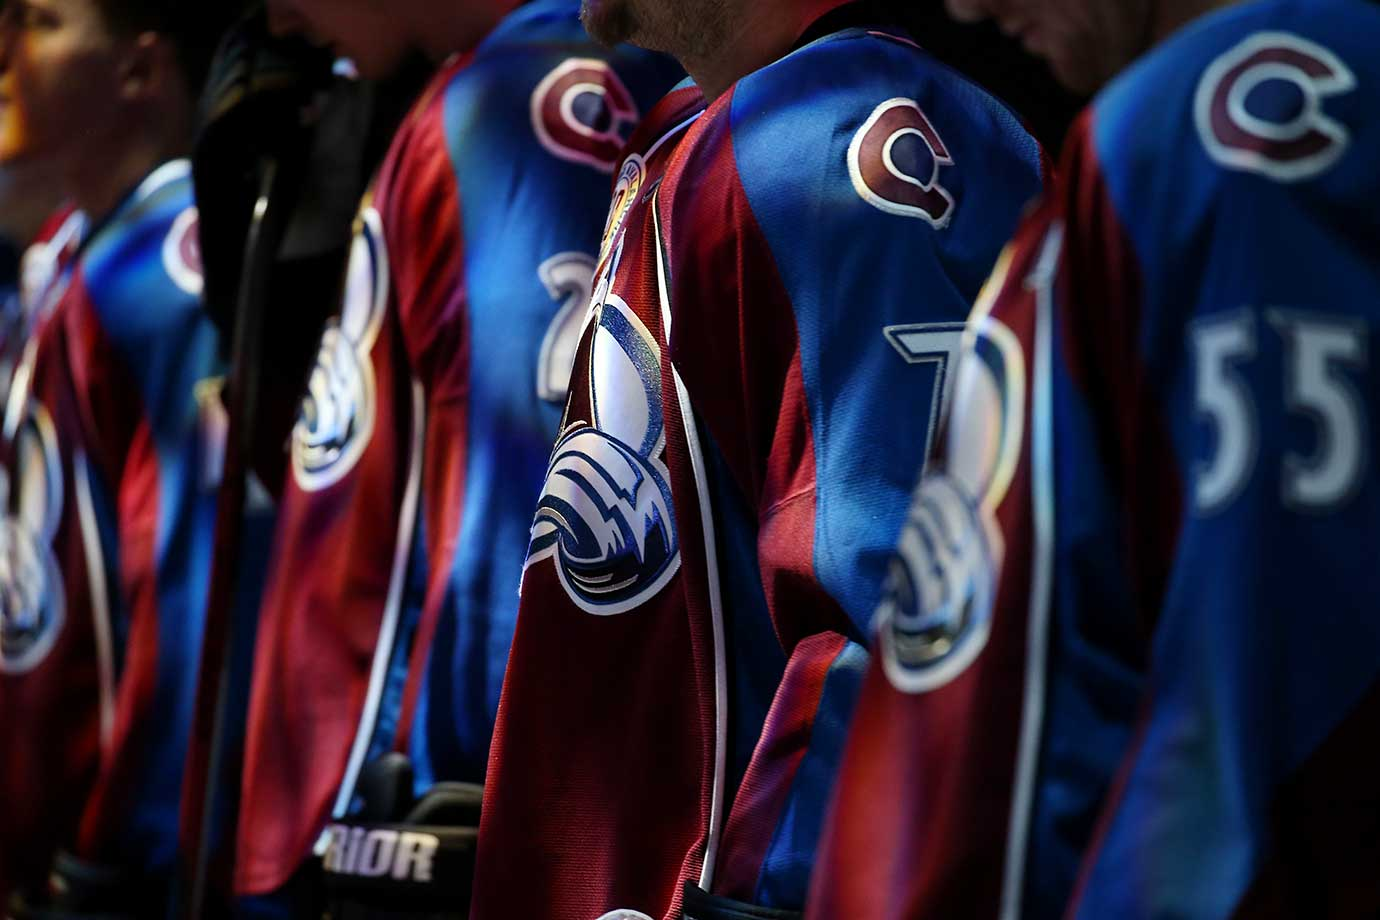 Members of the Colorado Avalanche stand for the National Anthem prior to their game against the Dallas Stars at the Pepsi Center in Colorado.